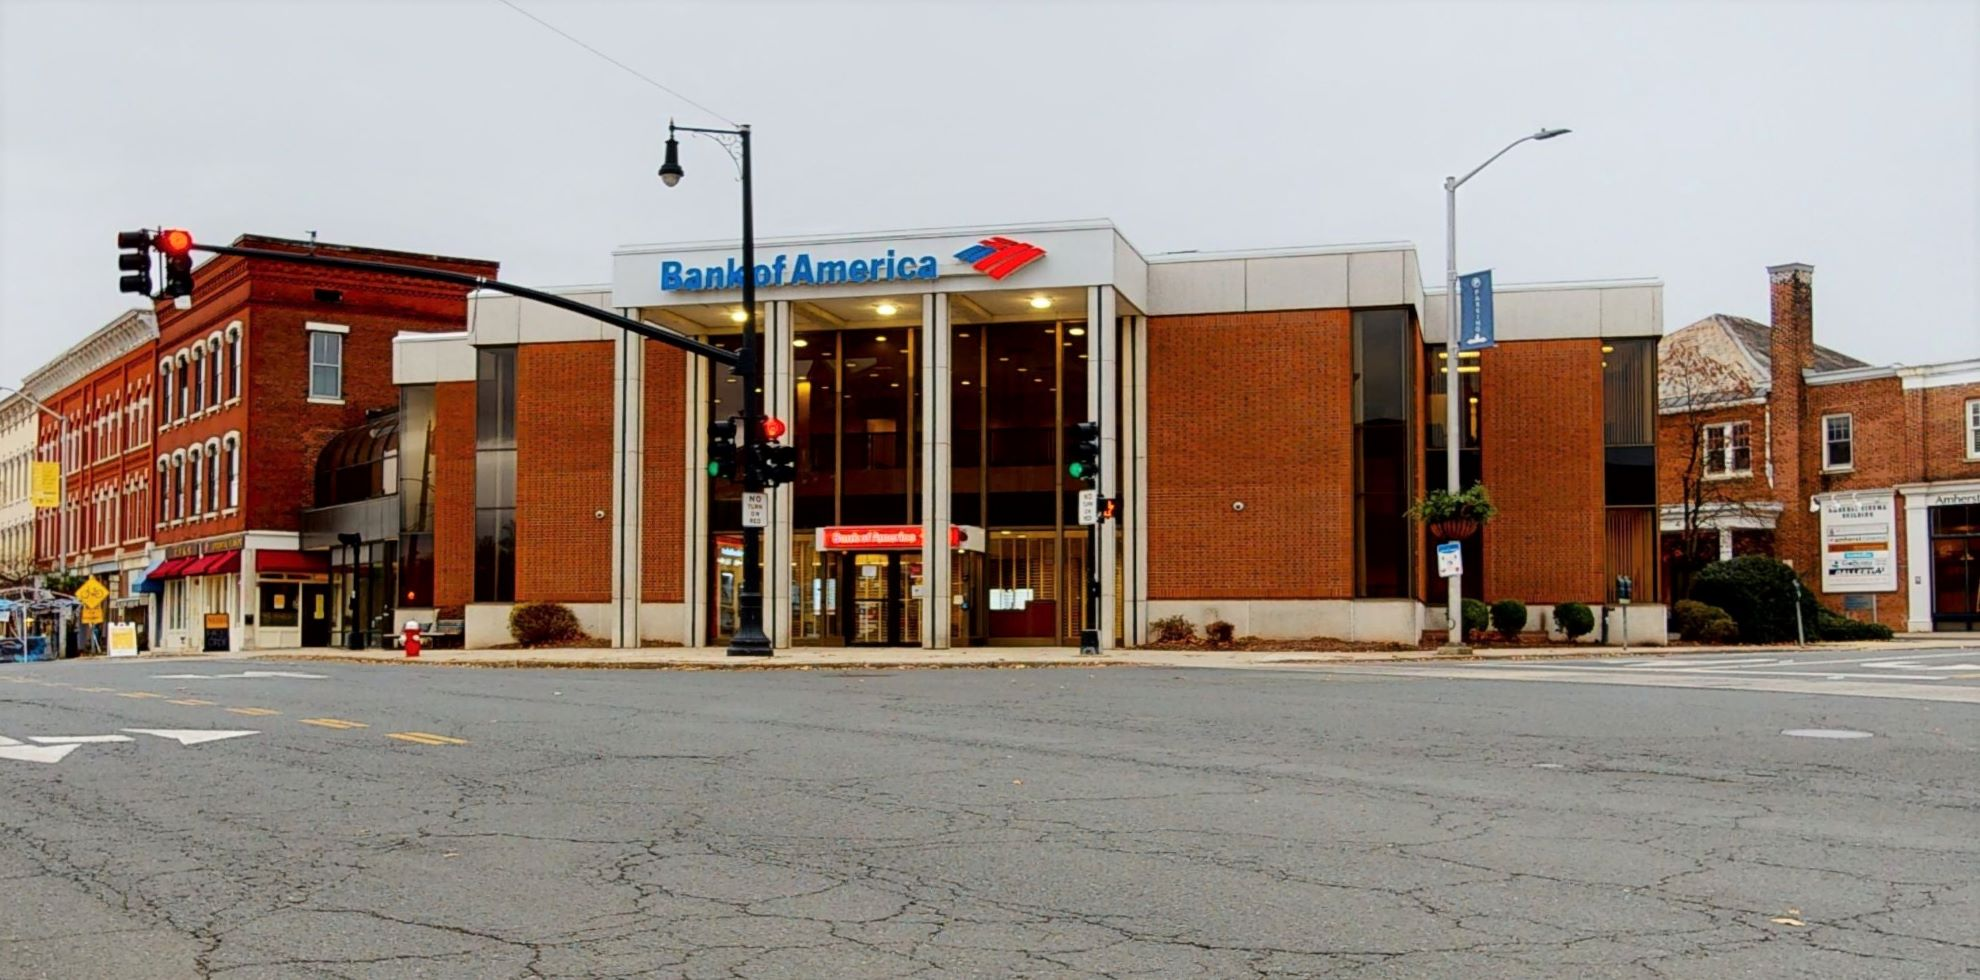 Bank of America financial center with walk-up ATM | 1 S Pleasant St, Amherst, MA 01002